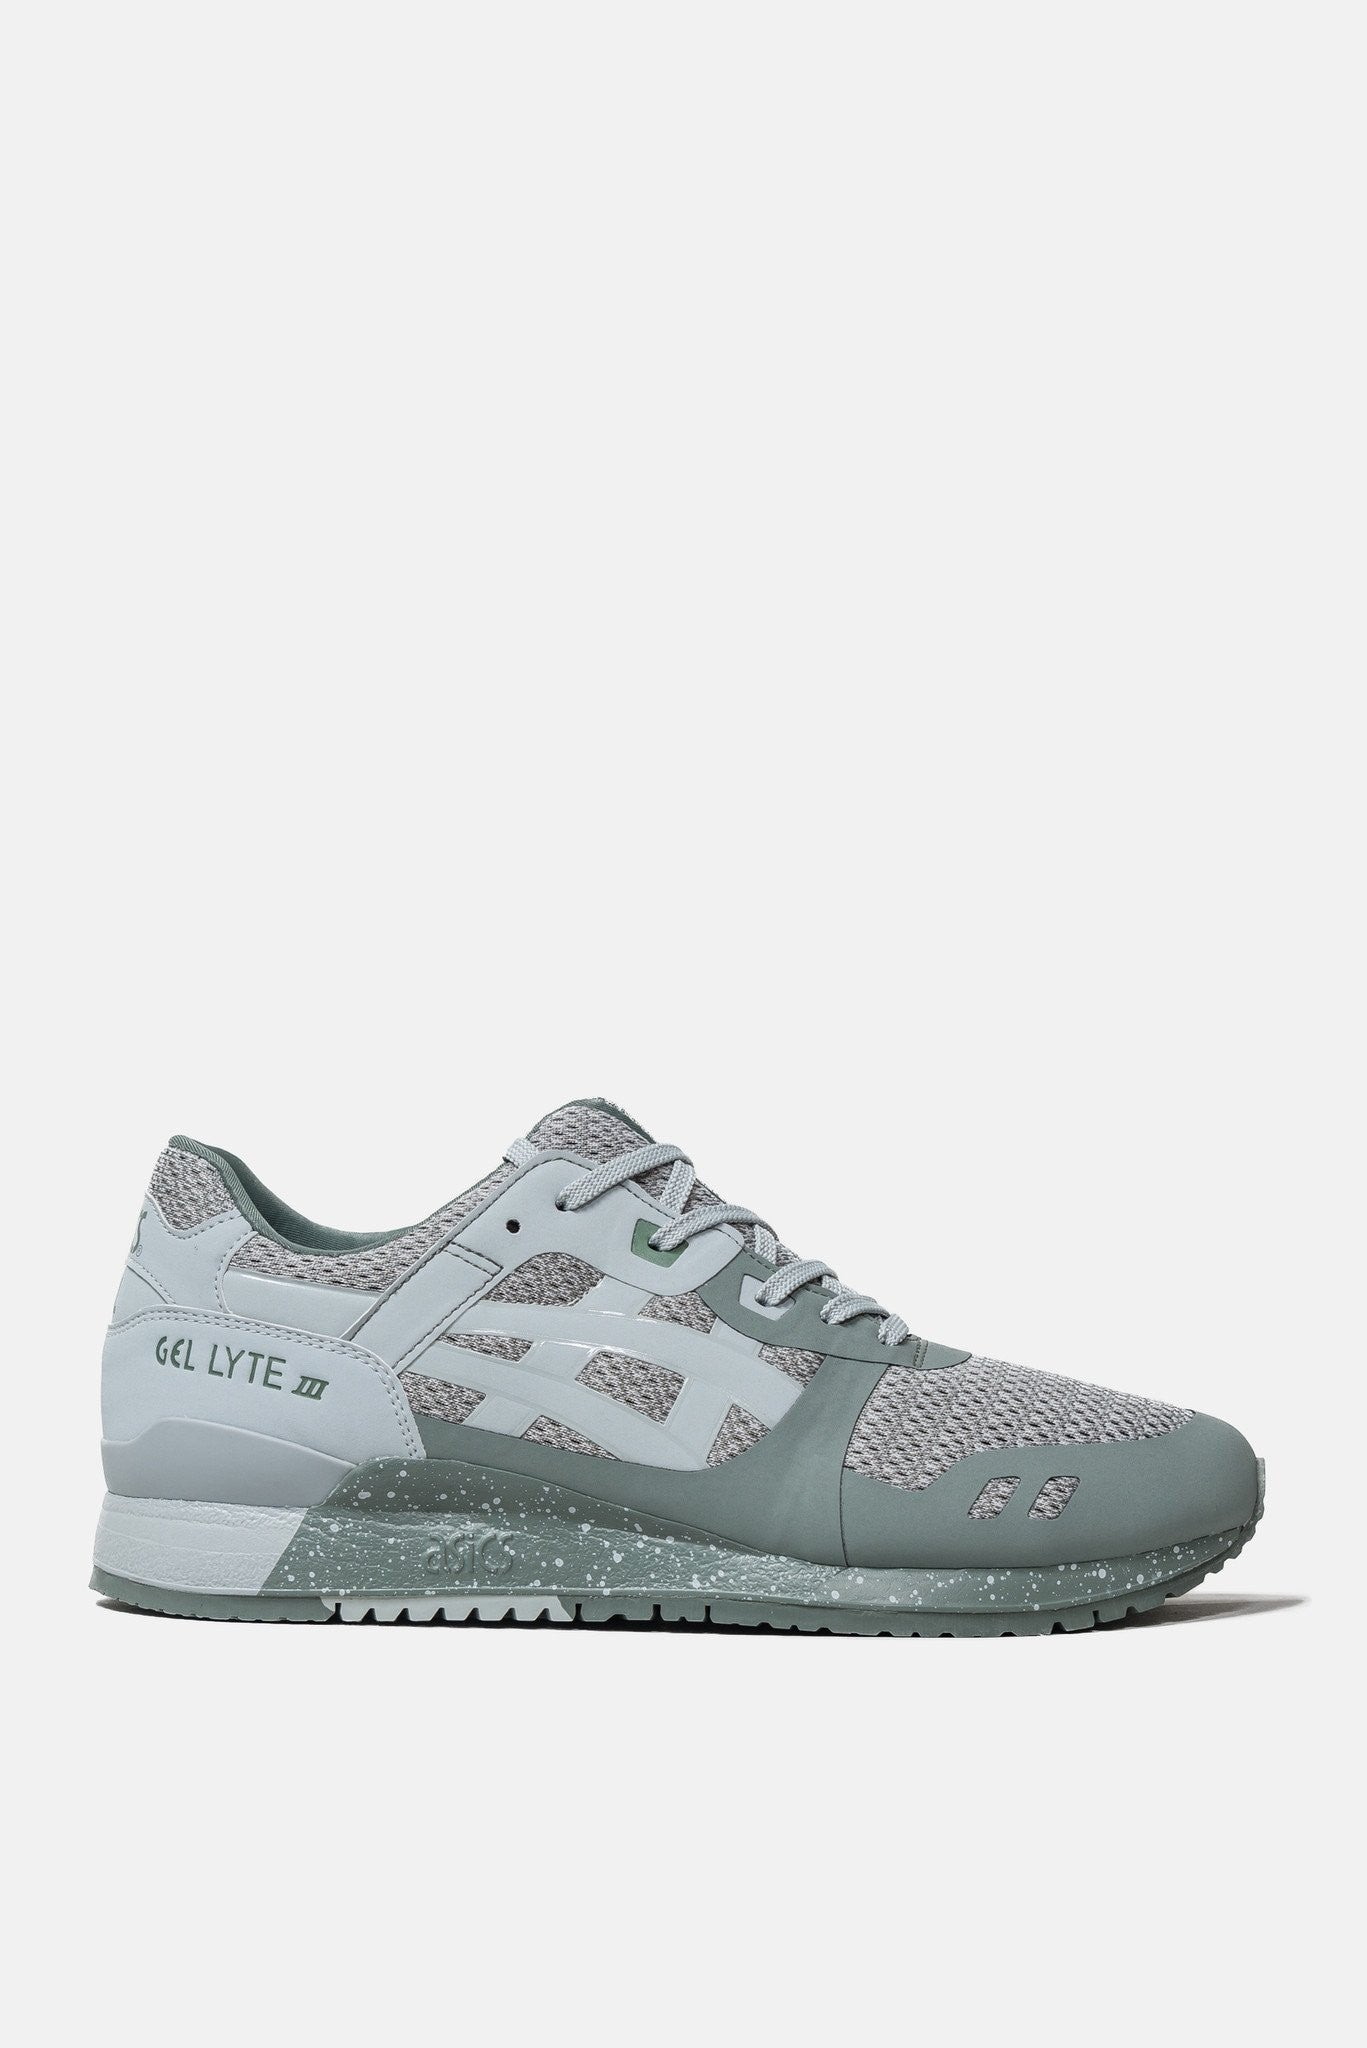 Priory Scarpe Iii Su Lyte Ns Asics Gel Disponibile UqP6SZw